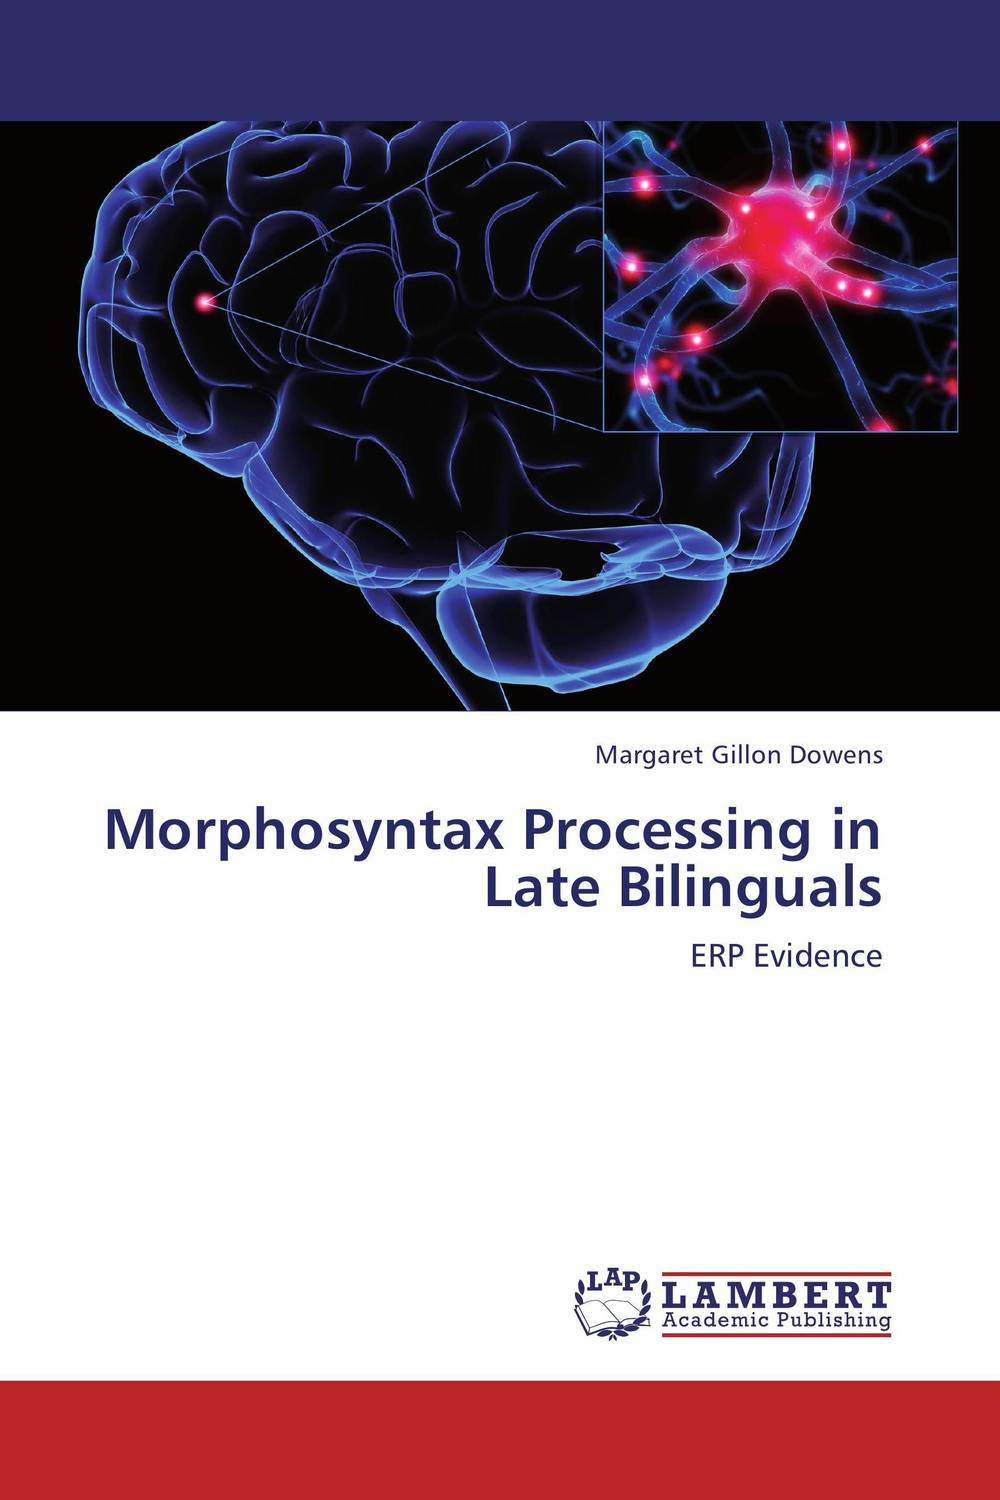 Morphosyntax Processing in Late Bilinguals zoltan dornyei the psychology of second language acquisition